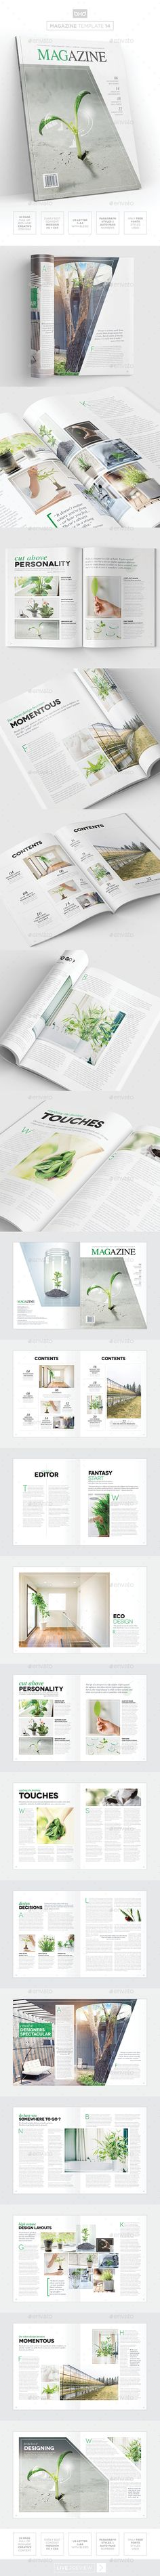 Magazine Template - InDesign 24 Page Layout V14